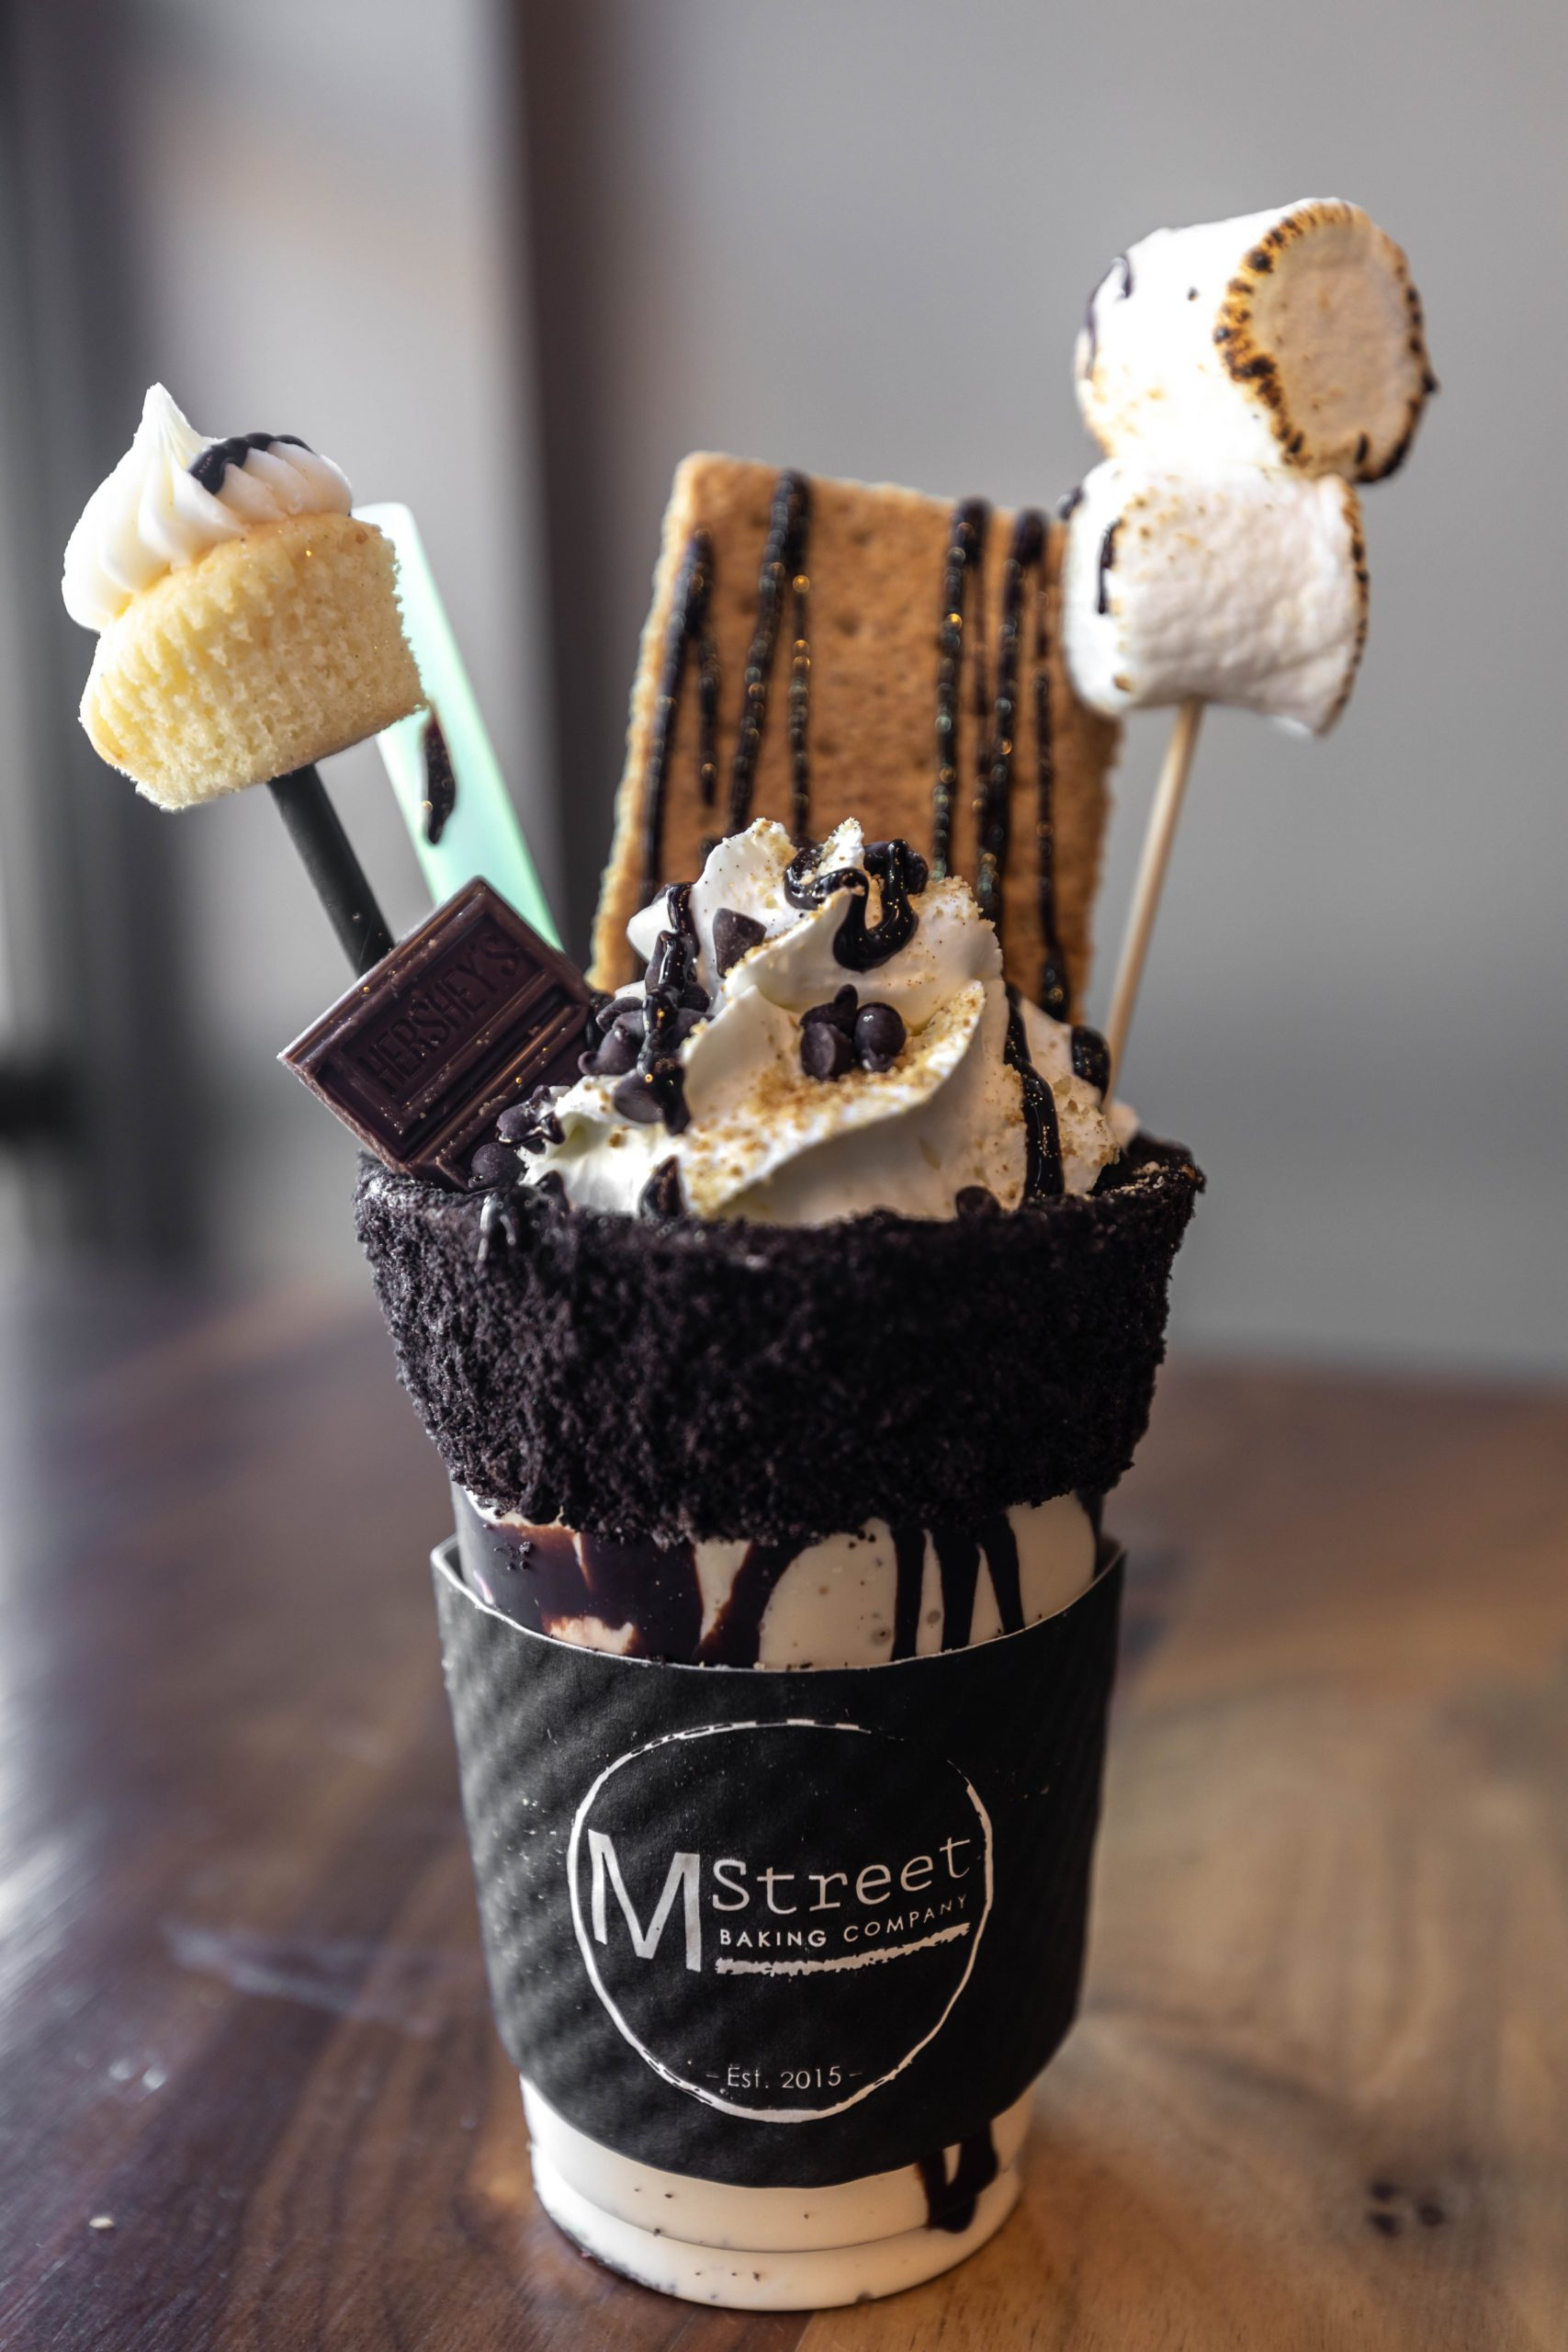 Insane Milkshakes From M Street Baking Co. in Howell Michigan S'mores by Annie Fairfax